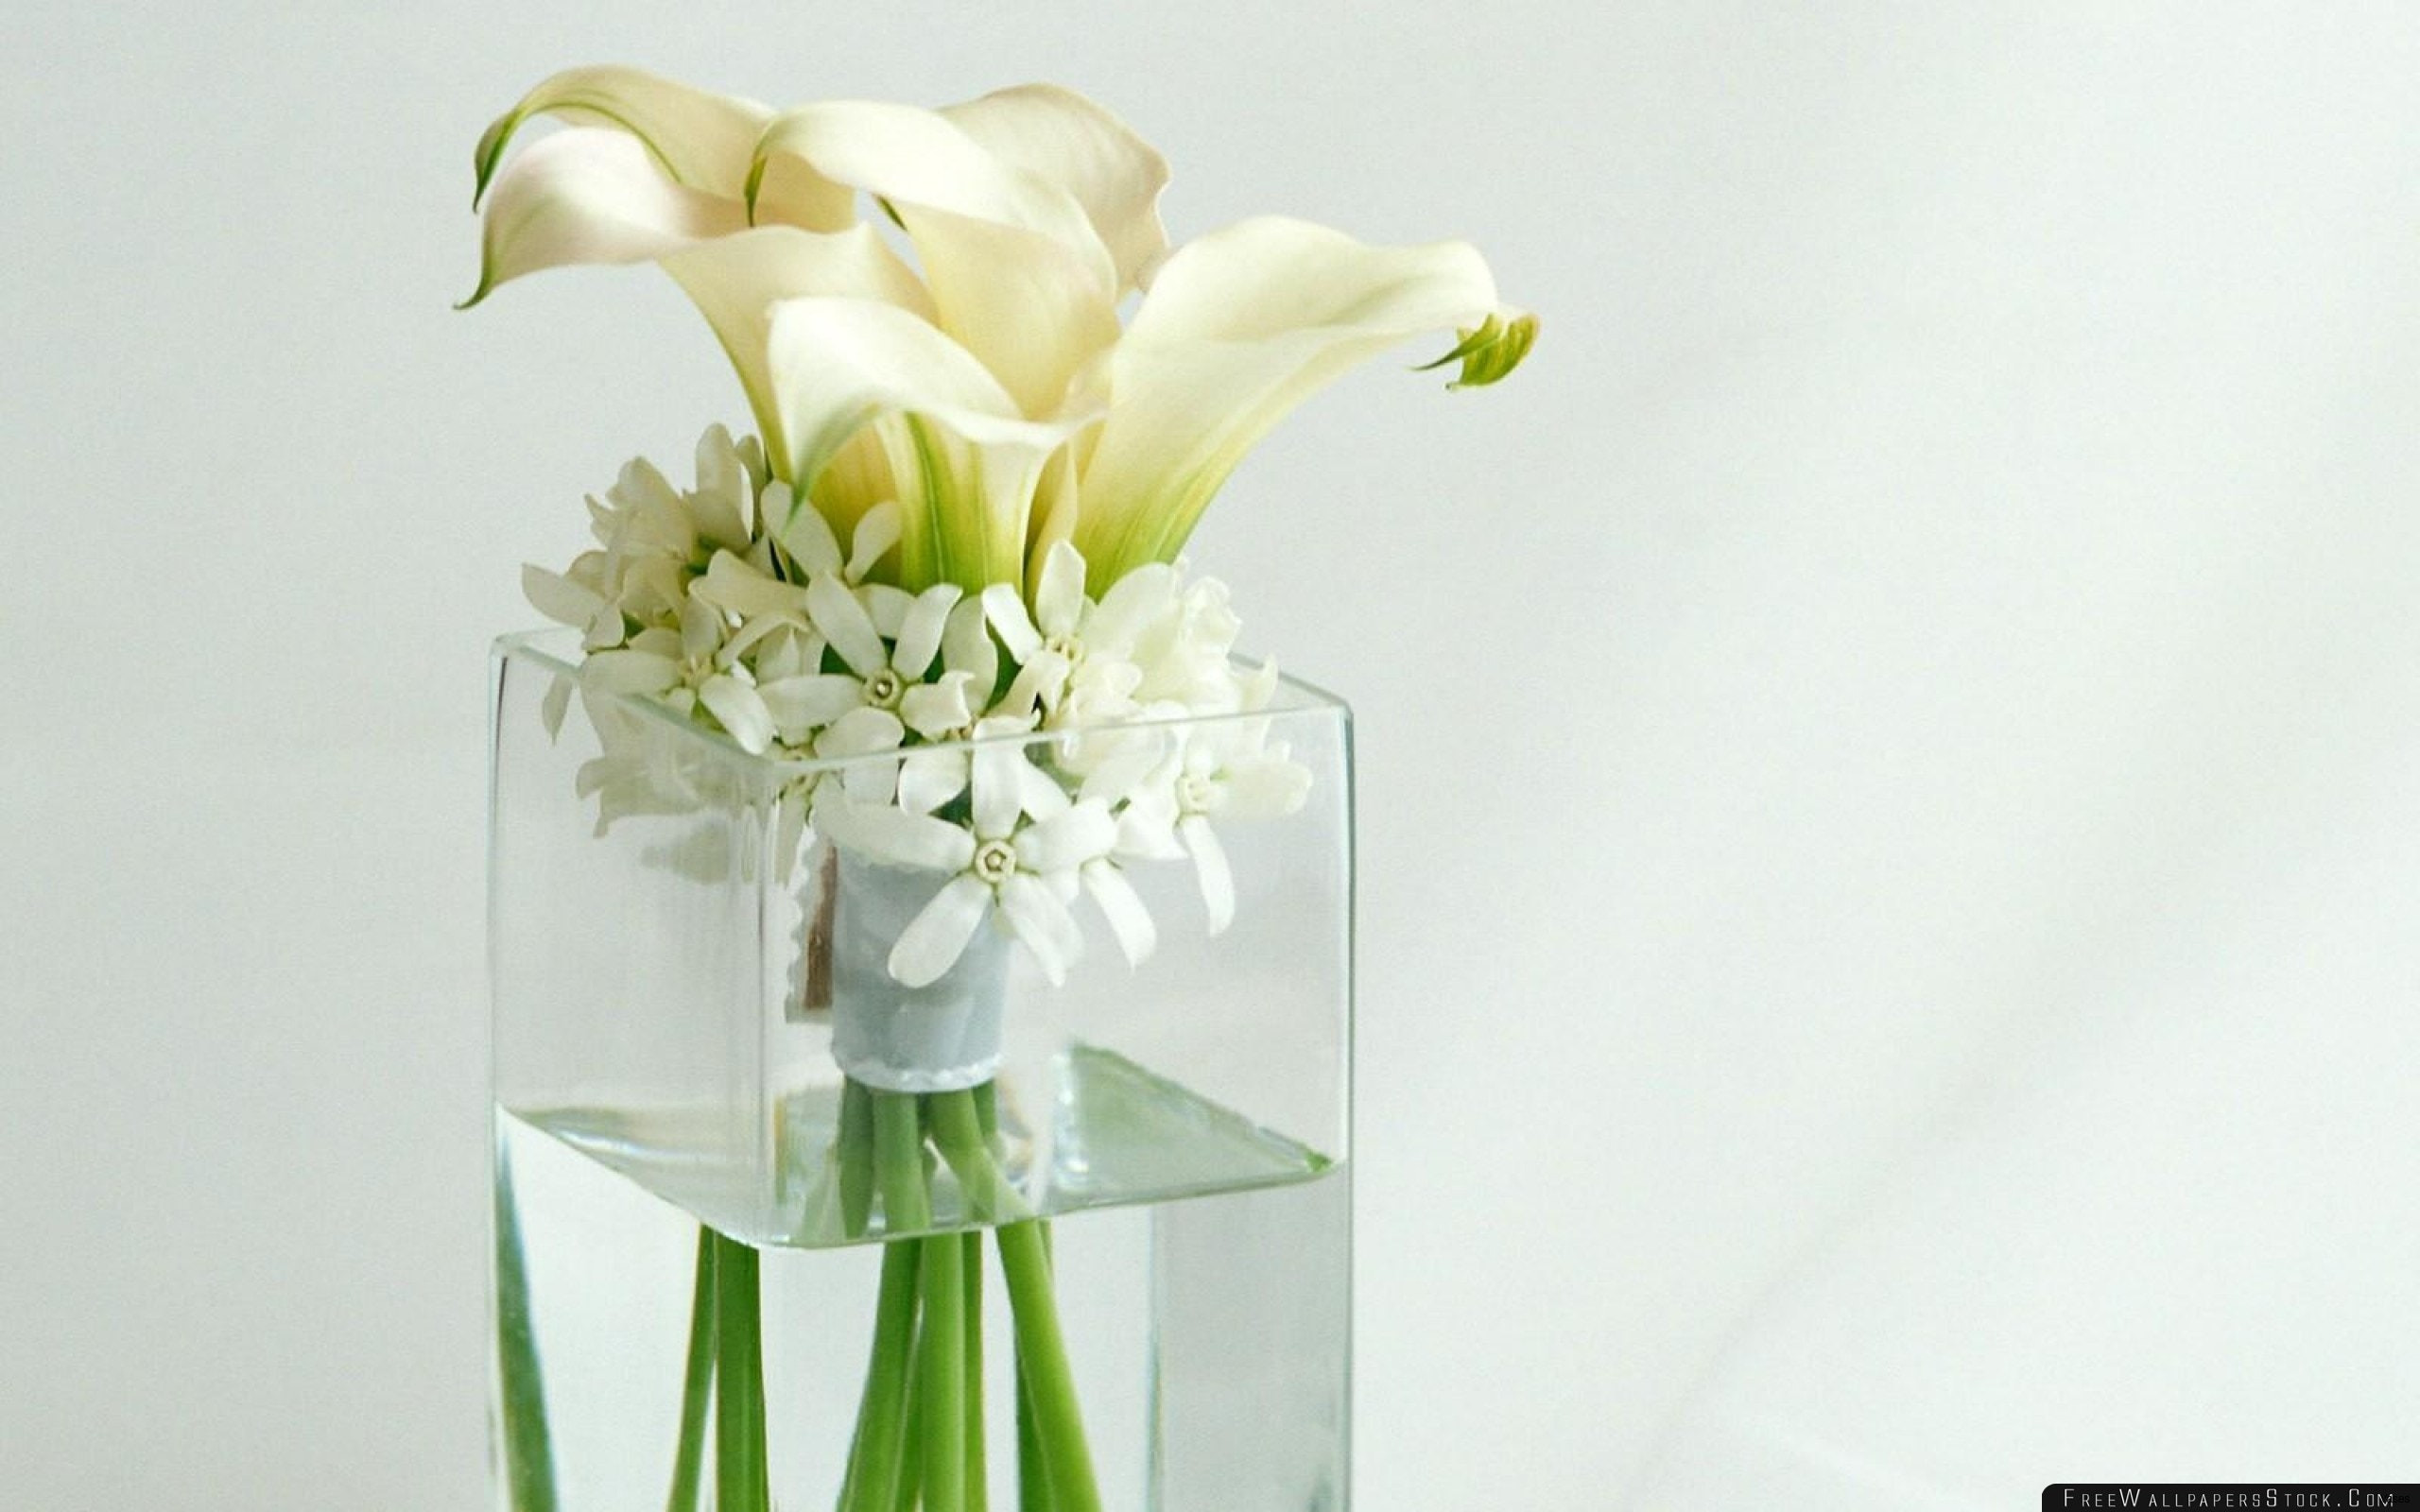 rectangle glass vase of rectangle flower vases image tall vase centerpiece ideas vases with rectangle flower vases image tall vase centerpiece ideas vases flowers in water 0d artificial of rectangle